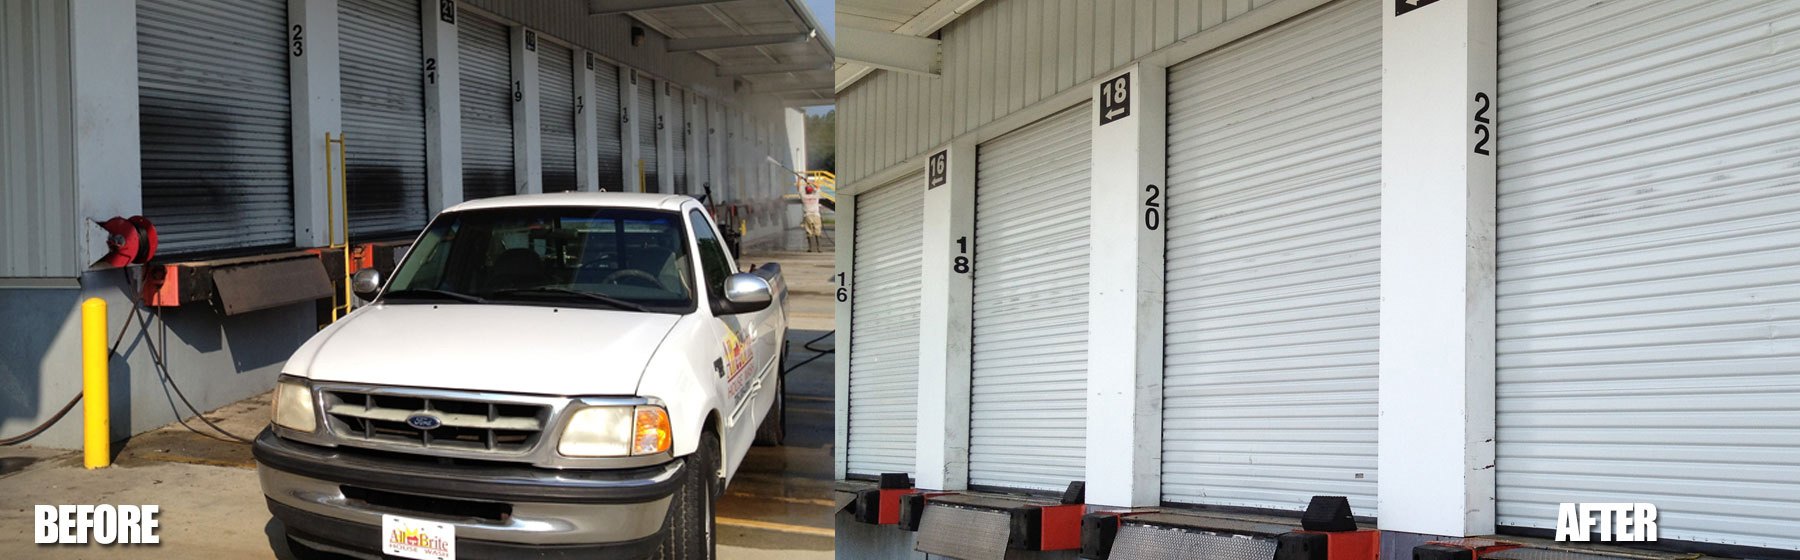 commercial-pressure-washing-augusta